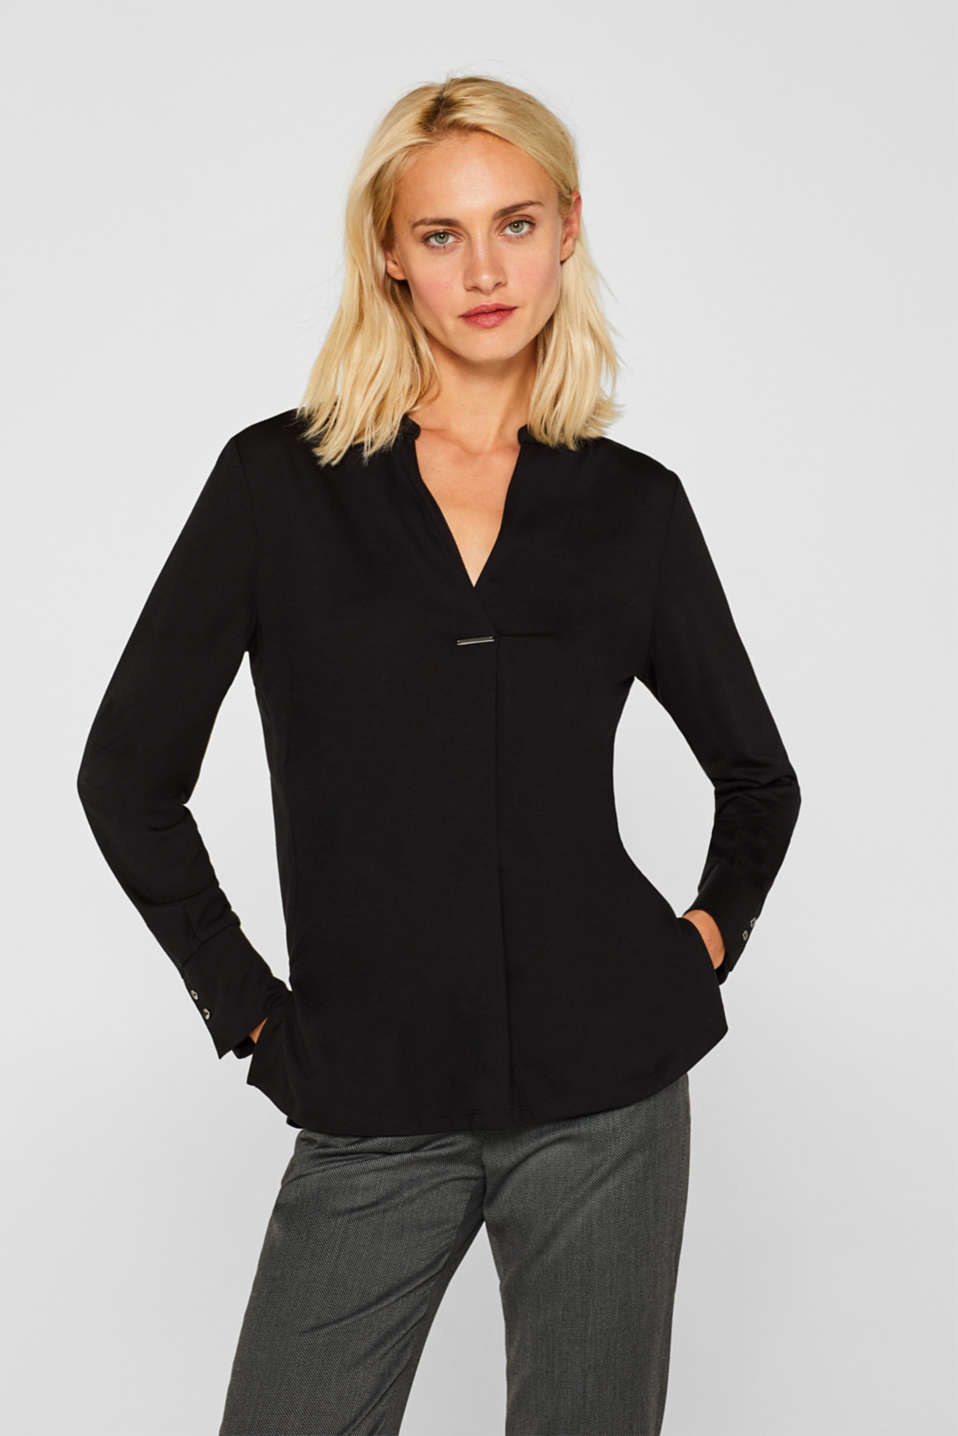 Esprit - Long sleeve top in a blouse style, blended lyocell